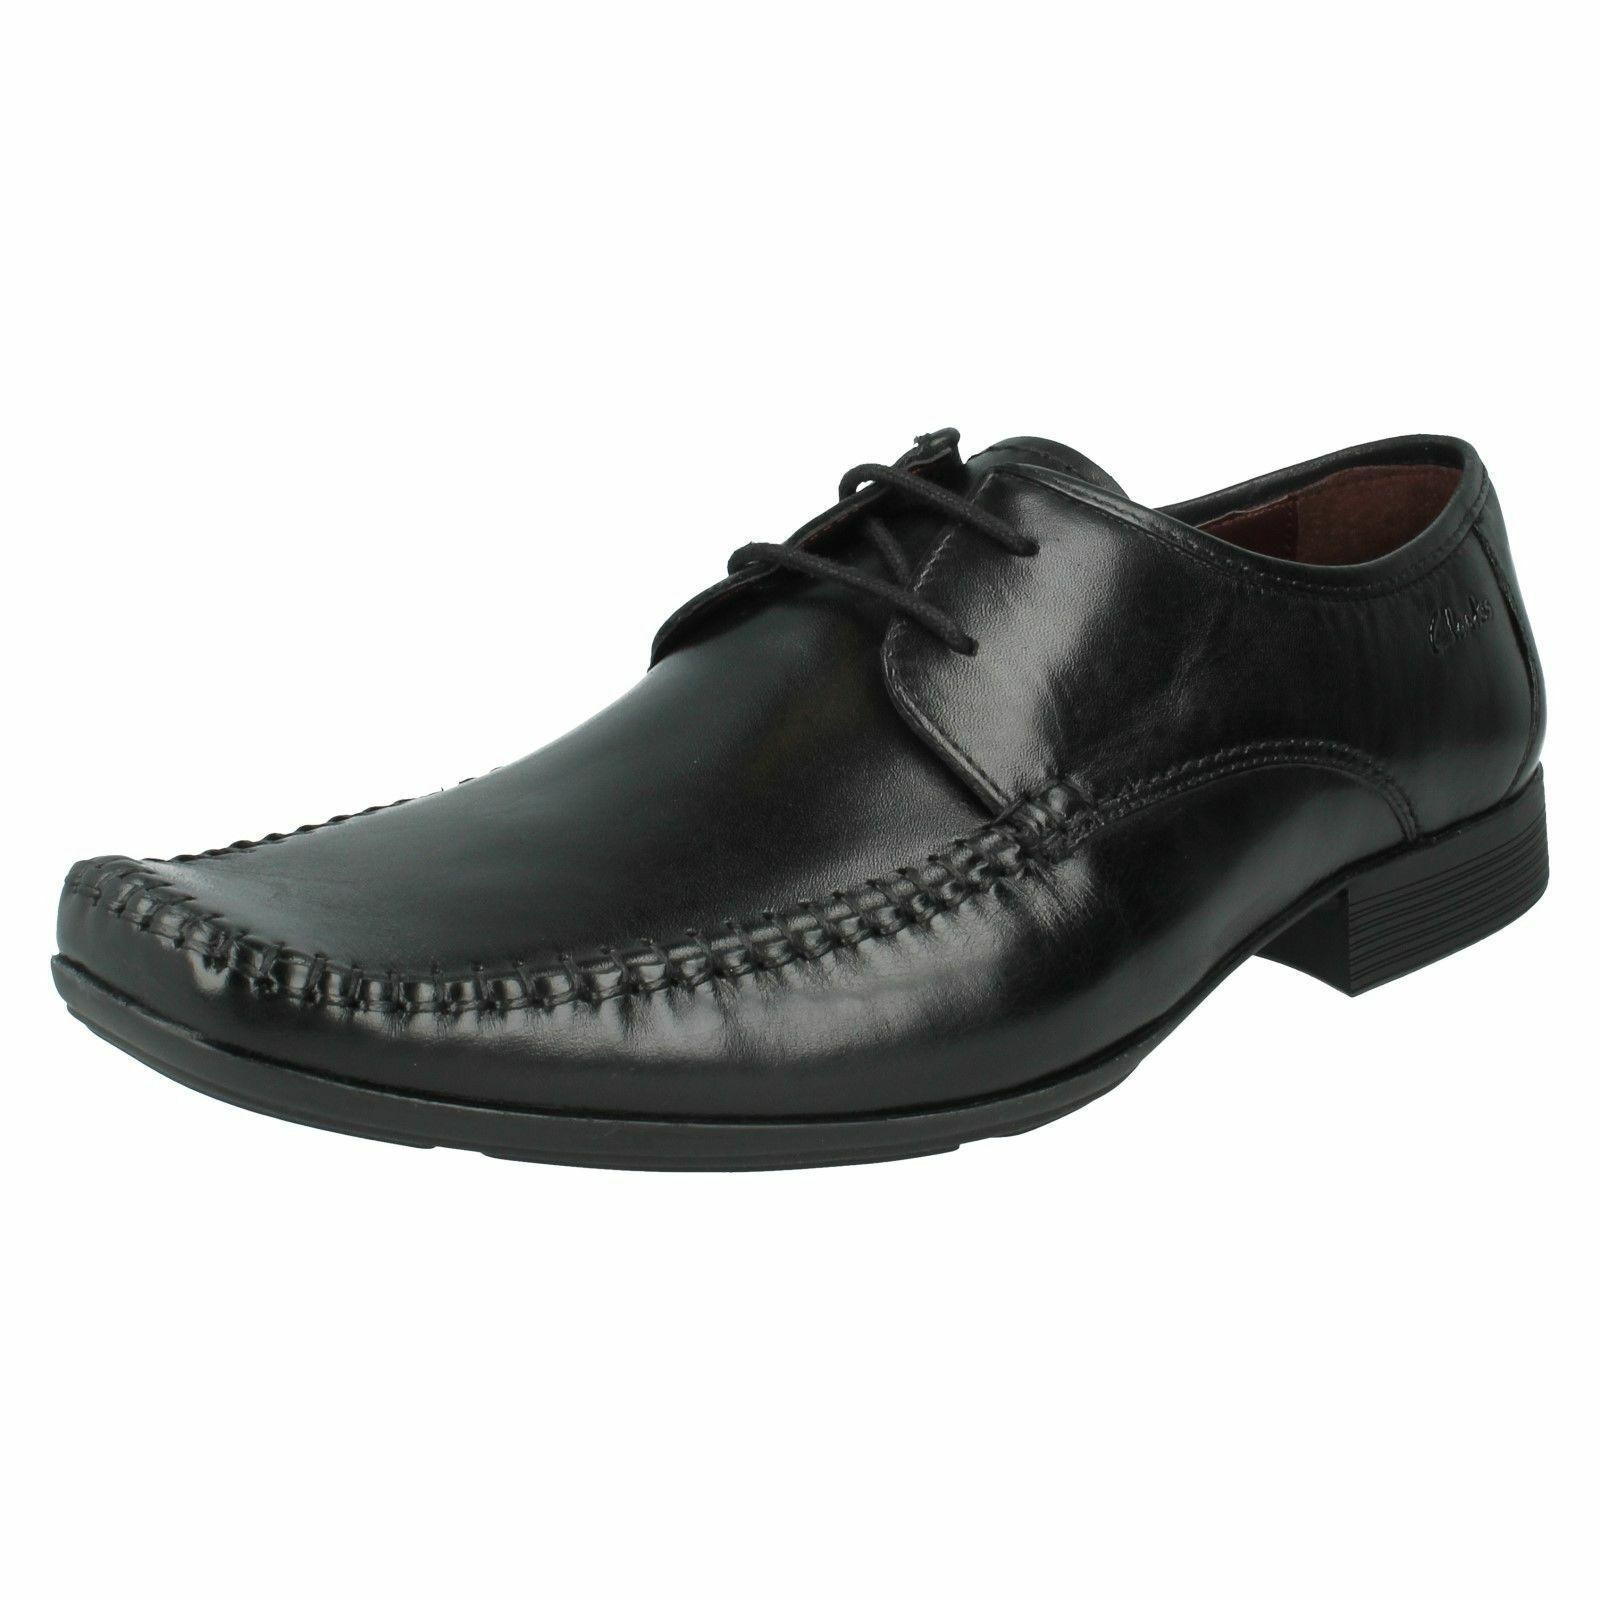 Clarks Leather Ferro Walk Hombre Negro Leather Clarks Lace-up zapatos G Fitting (38B) (Kett) ab7a14